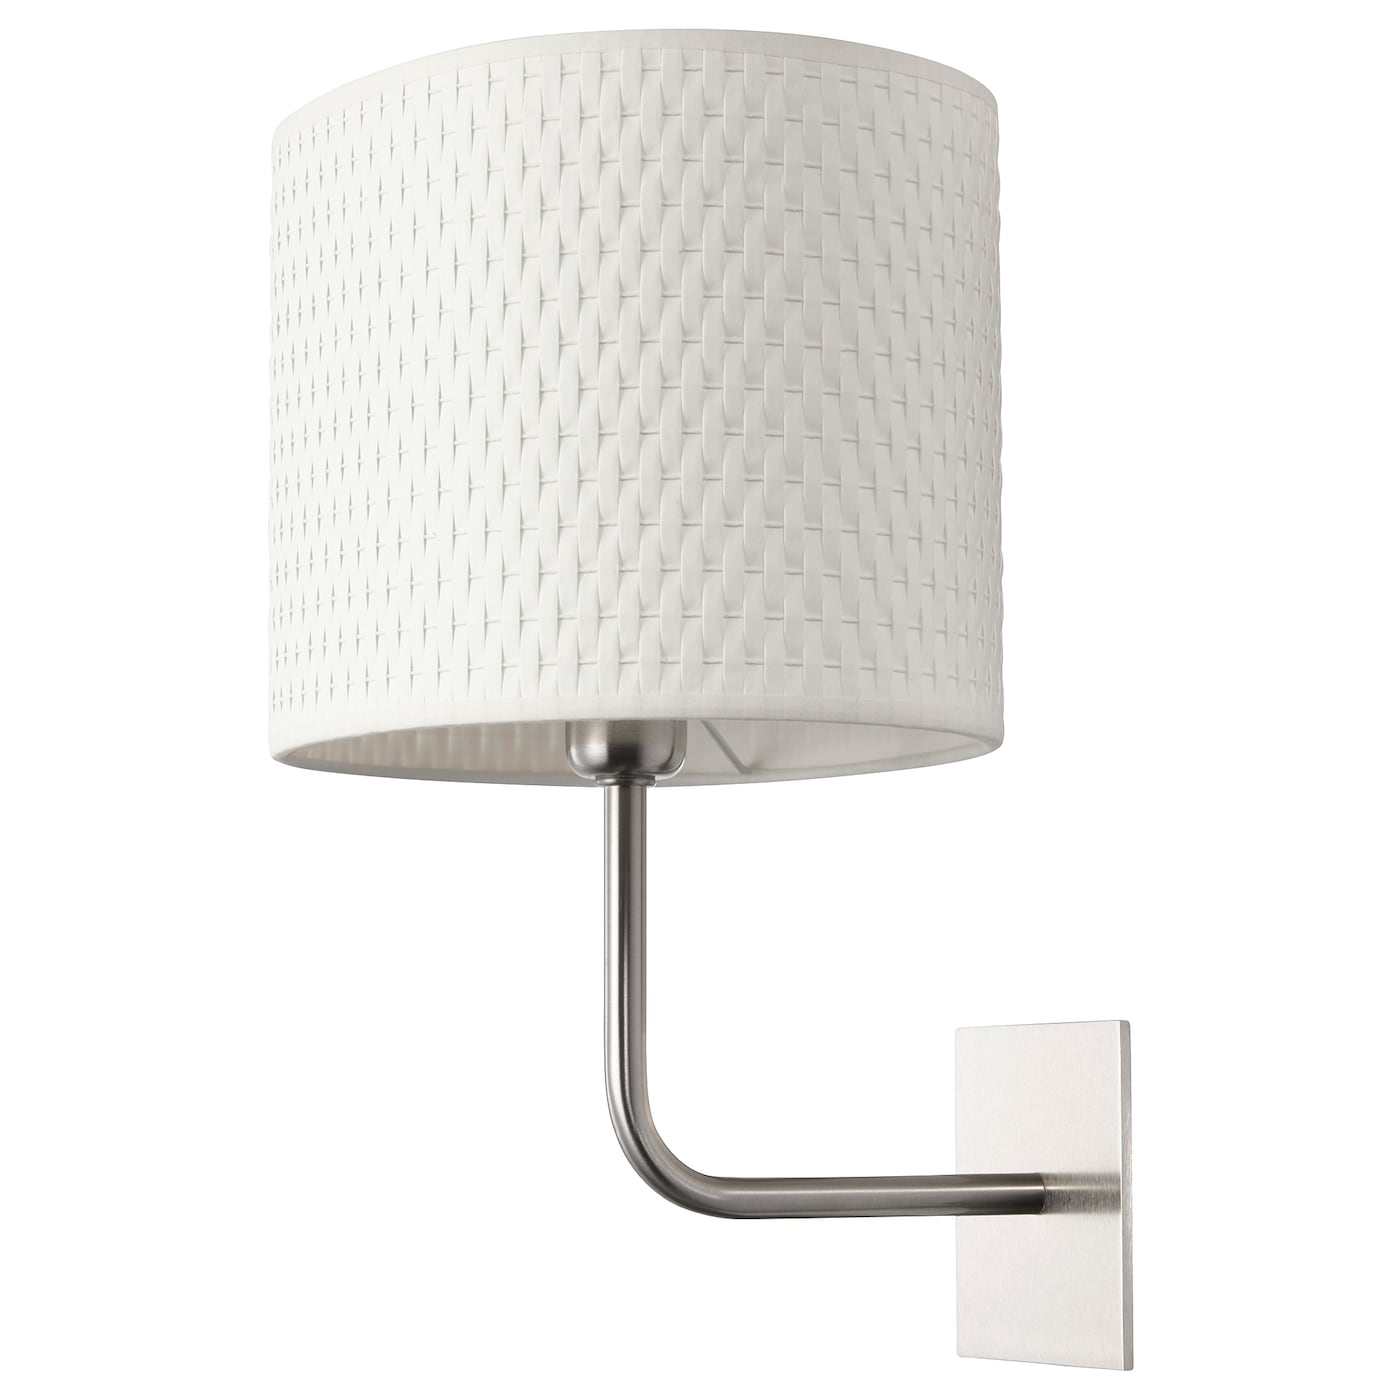 IKEA ALÄNG wall lamp Gives a soft mood light.